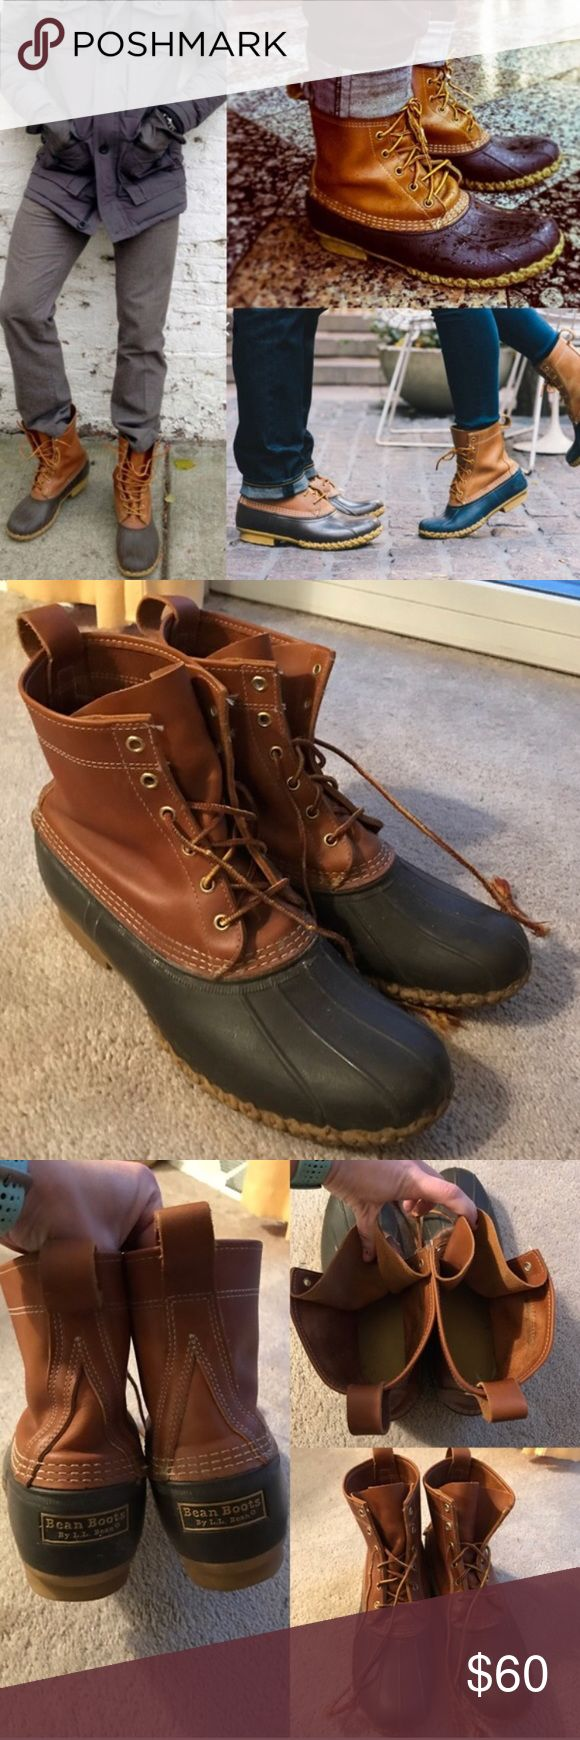 L.L. Bean boots duck boot men's tlc See last photo for more info. No size but measure up to a 12. Needs new laces. Have a faint hint of smoke- selling these for a friend. Been in my garage to air out for a few months. 🚫NO TRADES L.L. Bean Shoes Boots